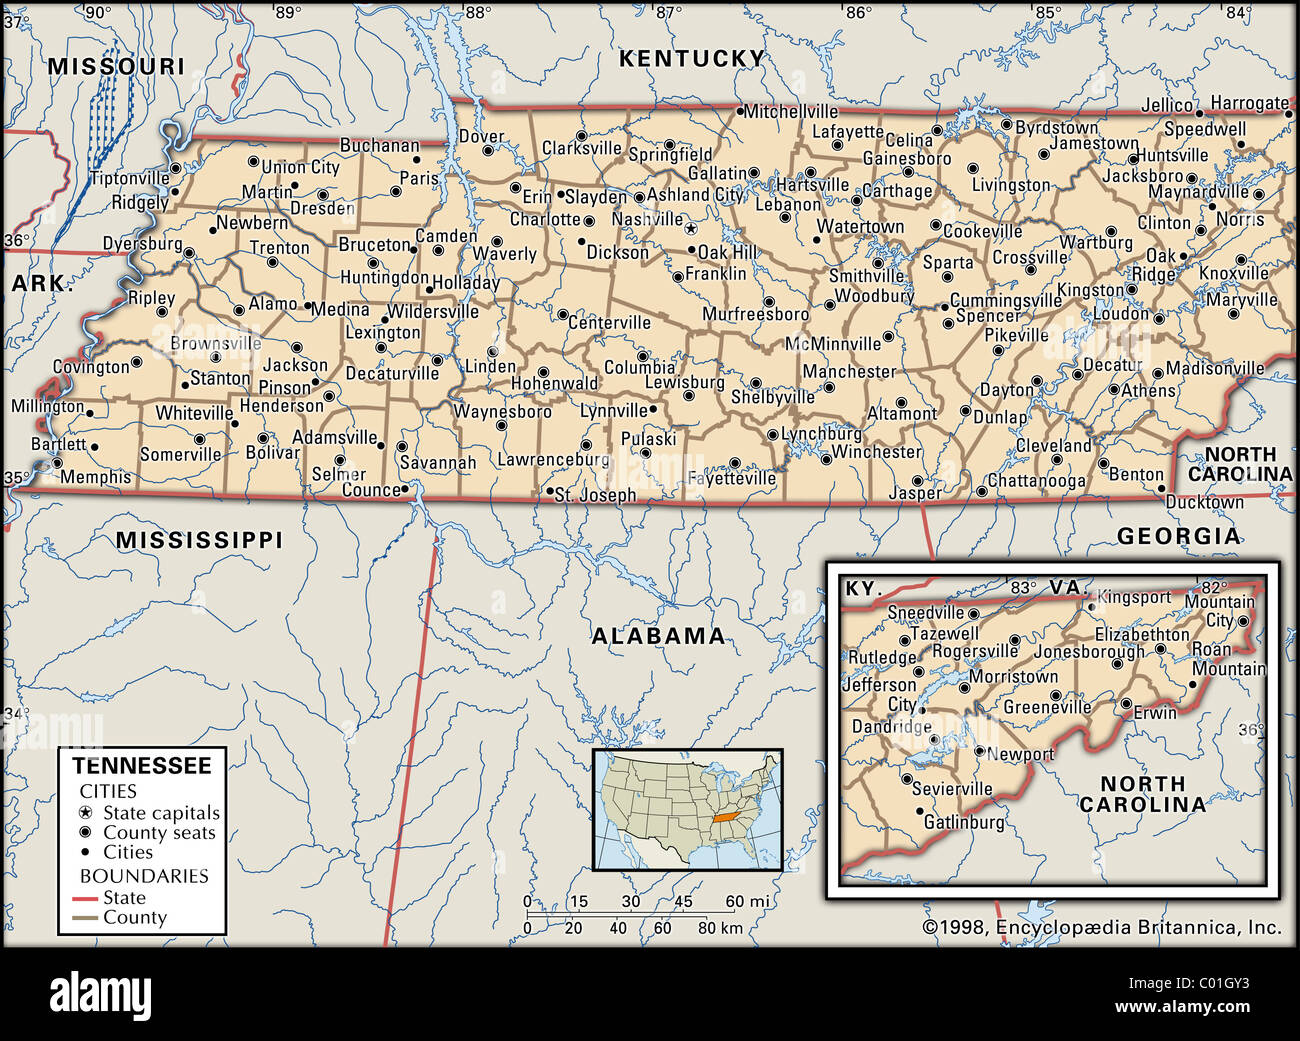 Political map of Tennessee - Stock Image